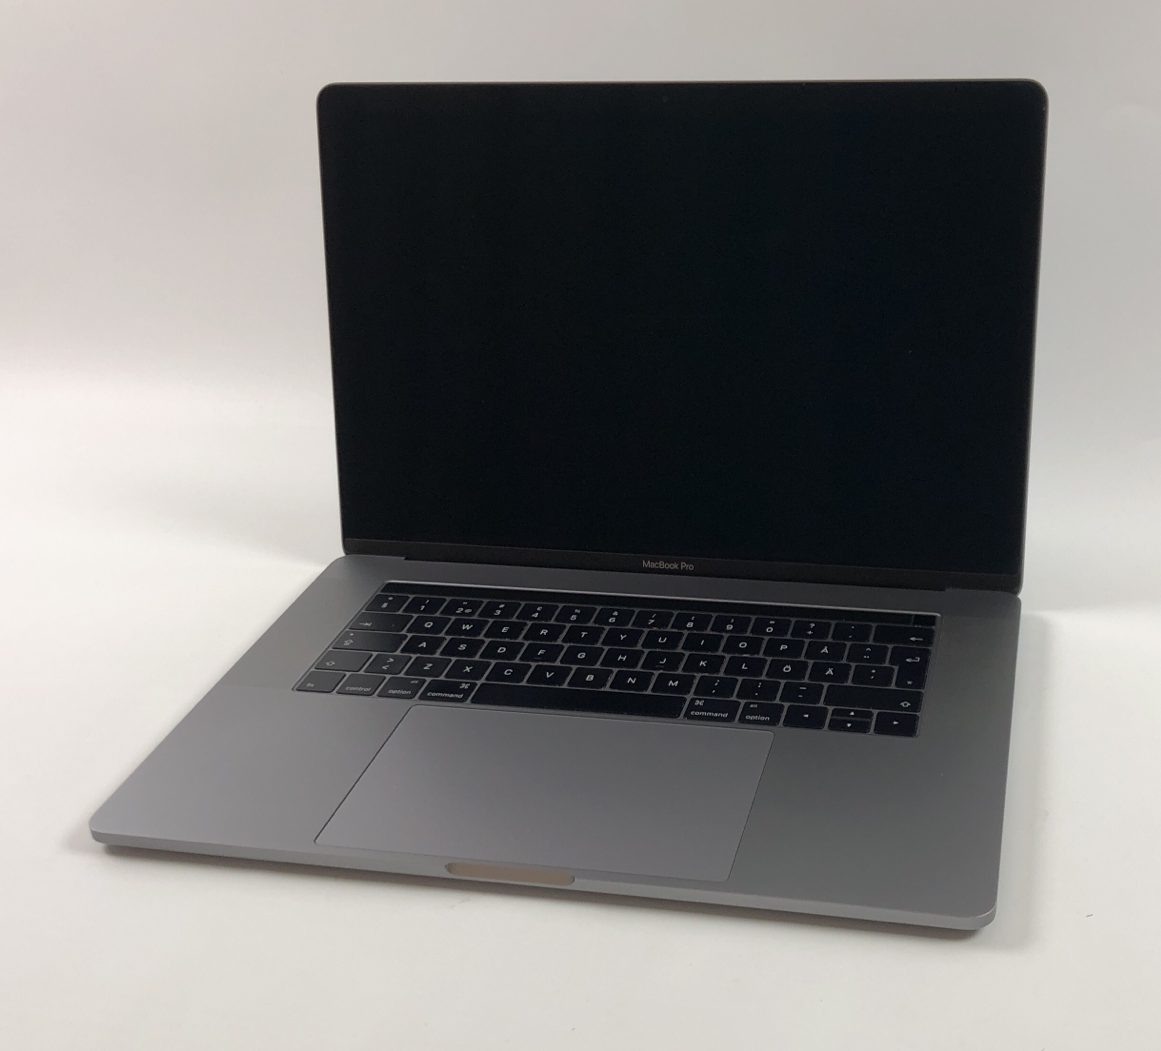 "MacBook Pro 15"" Touch Bar Late 2016 (Intel Quad-Core i7 2.6 GHz 16 GB RAM 256 GB SSD), Space Gray, Intel Quad-Core i7 2.6 GHz, 16 GB RAM, 256 GB SSD, Bild 1"